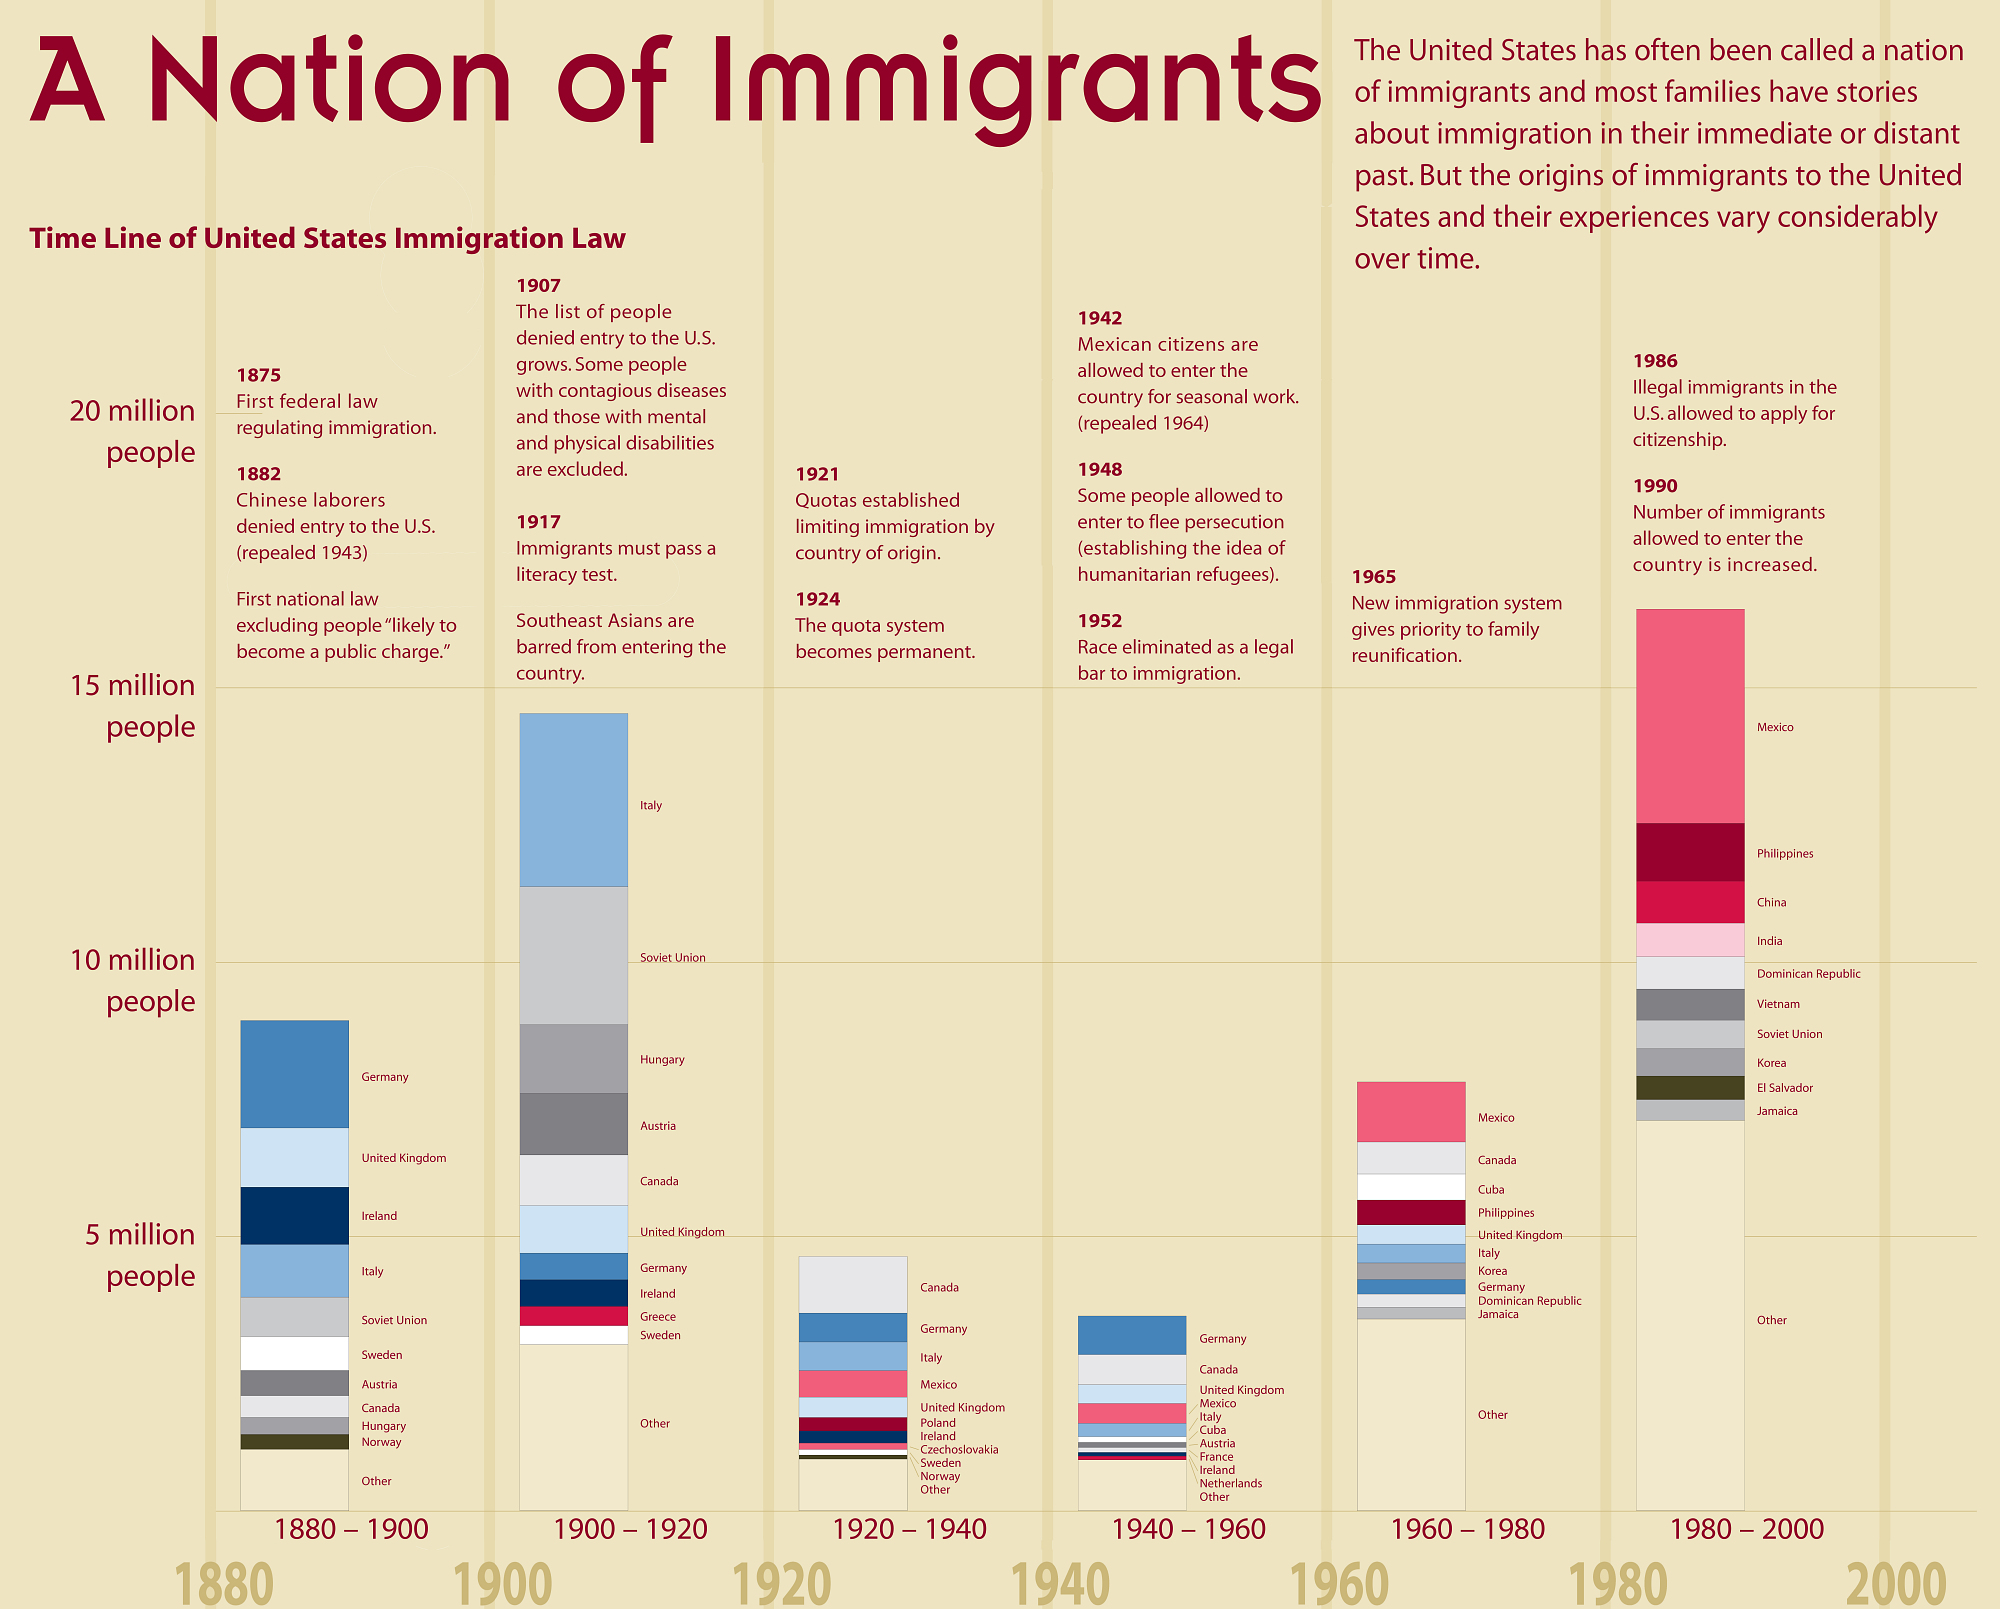 Infographic of Immigration by Country over time and Immigration Laws